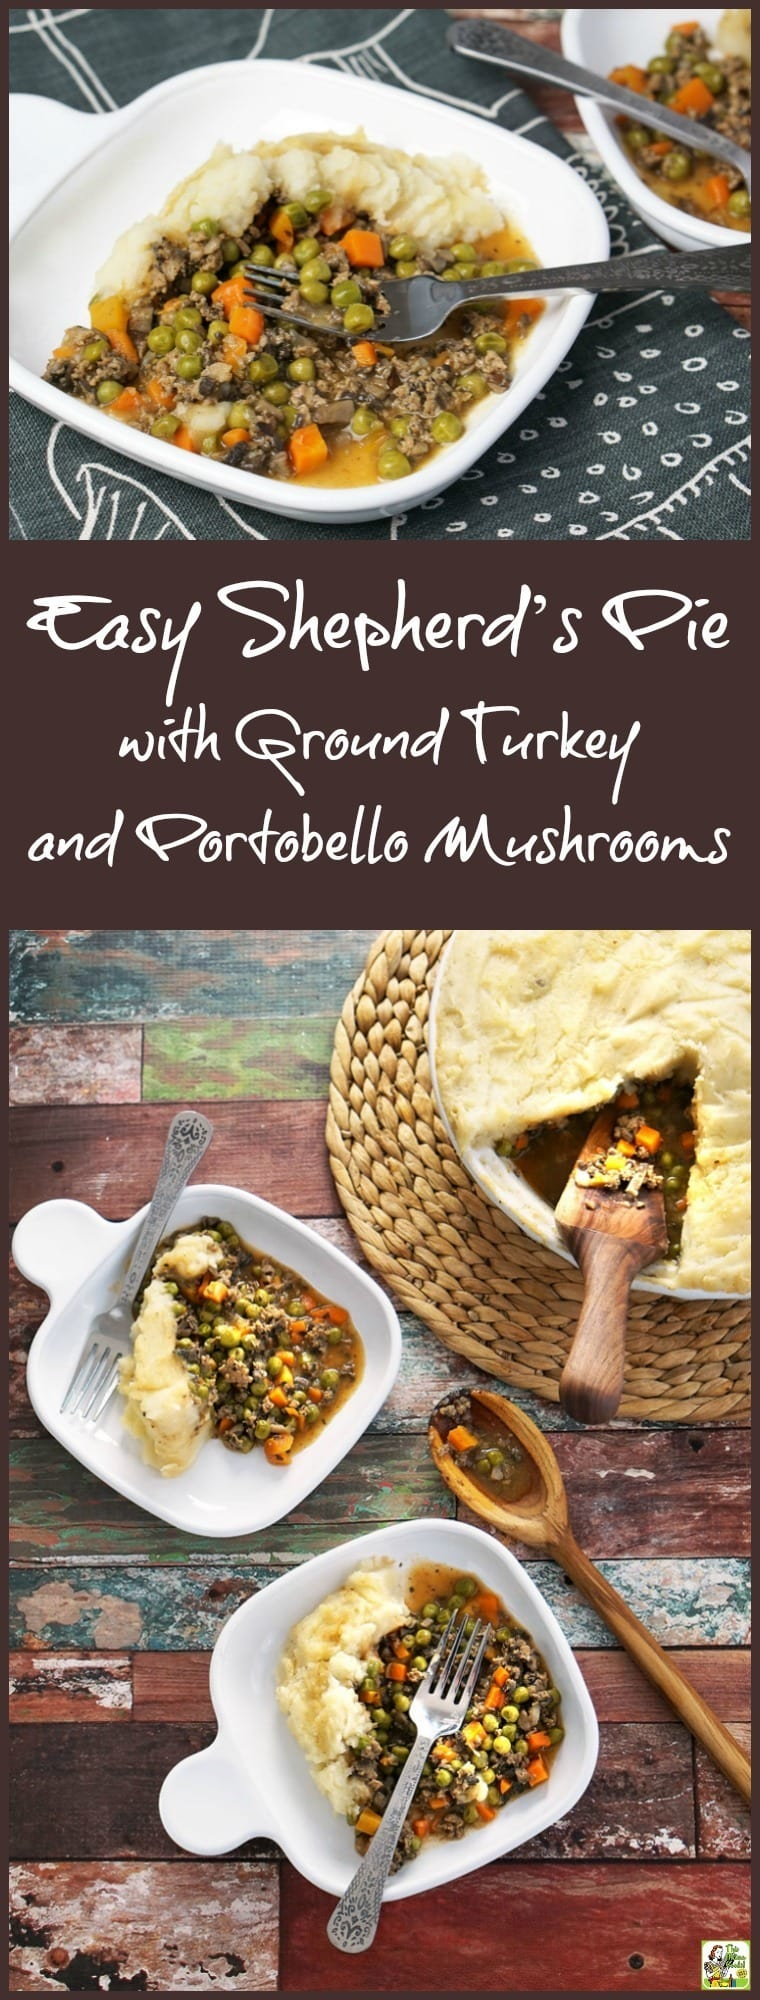 Looking for a simple shepherd's pie recipe that's easy on your budget and nutritious too? This Easy Shepherd's Pie recipe with Ground Turkey and Portobello Mushrooms is delicious and uses less ground meat and more healthy vegetables. It's a gluten free dinner recipe filled with vegetables that your family and dinner guest will love!